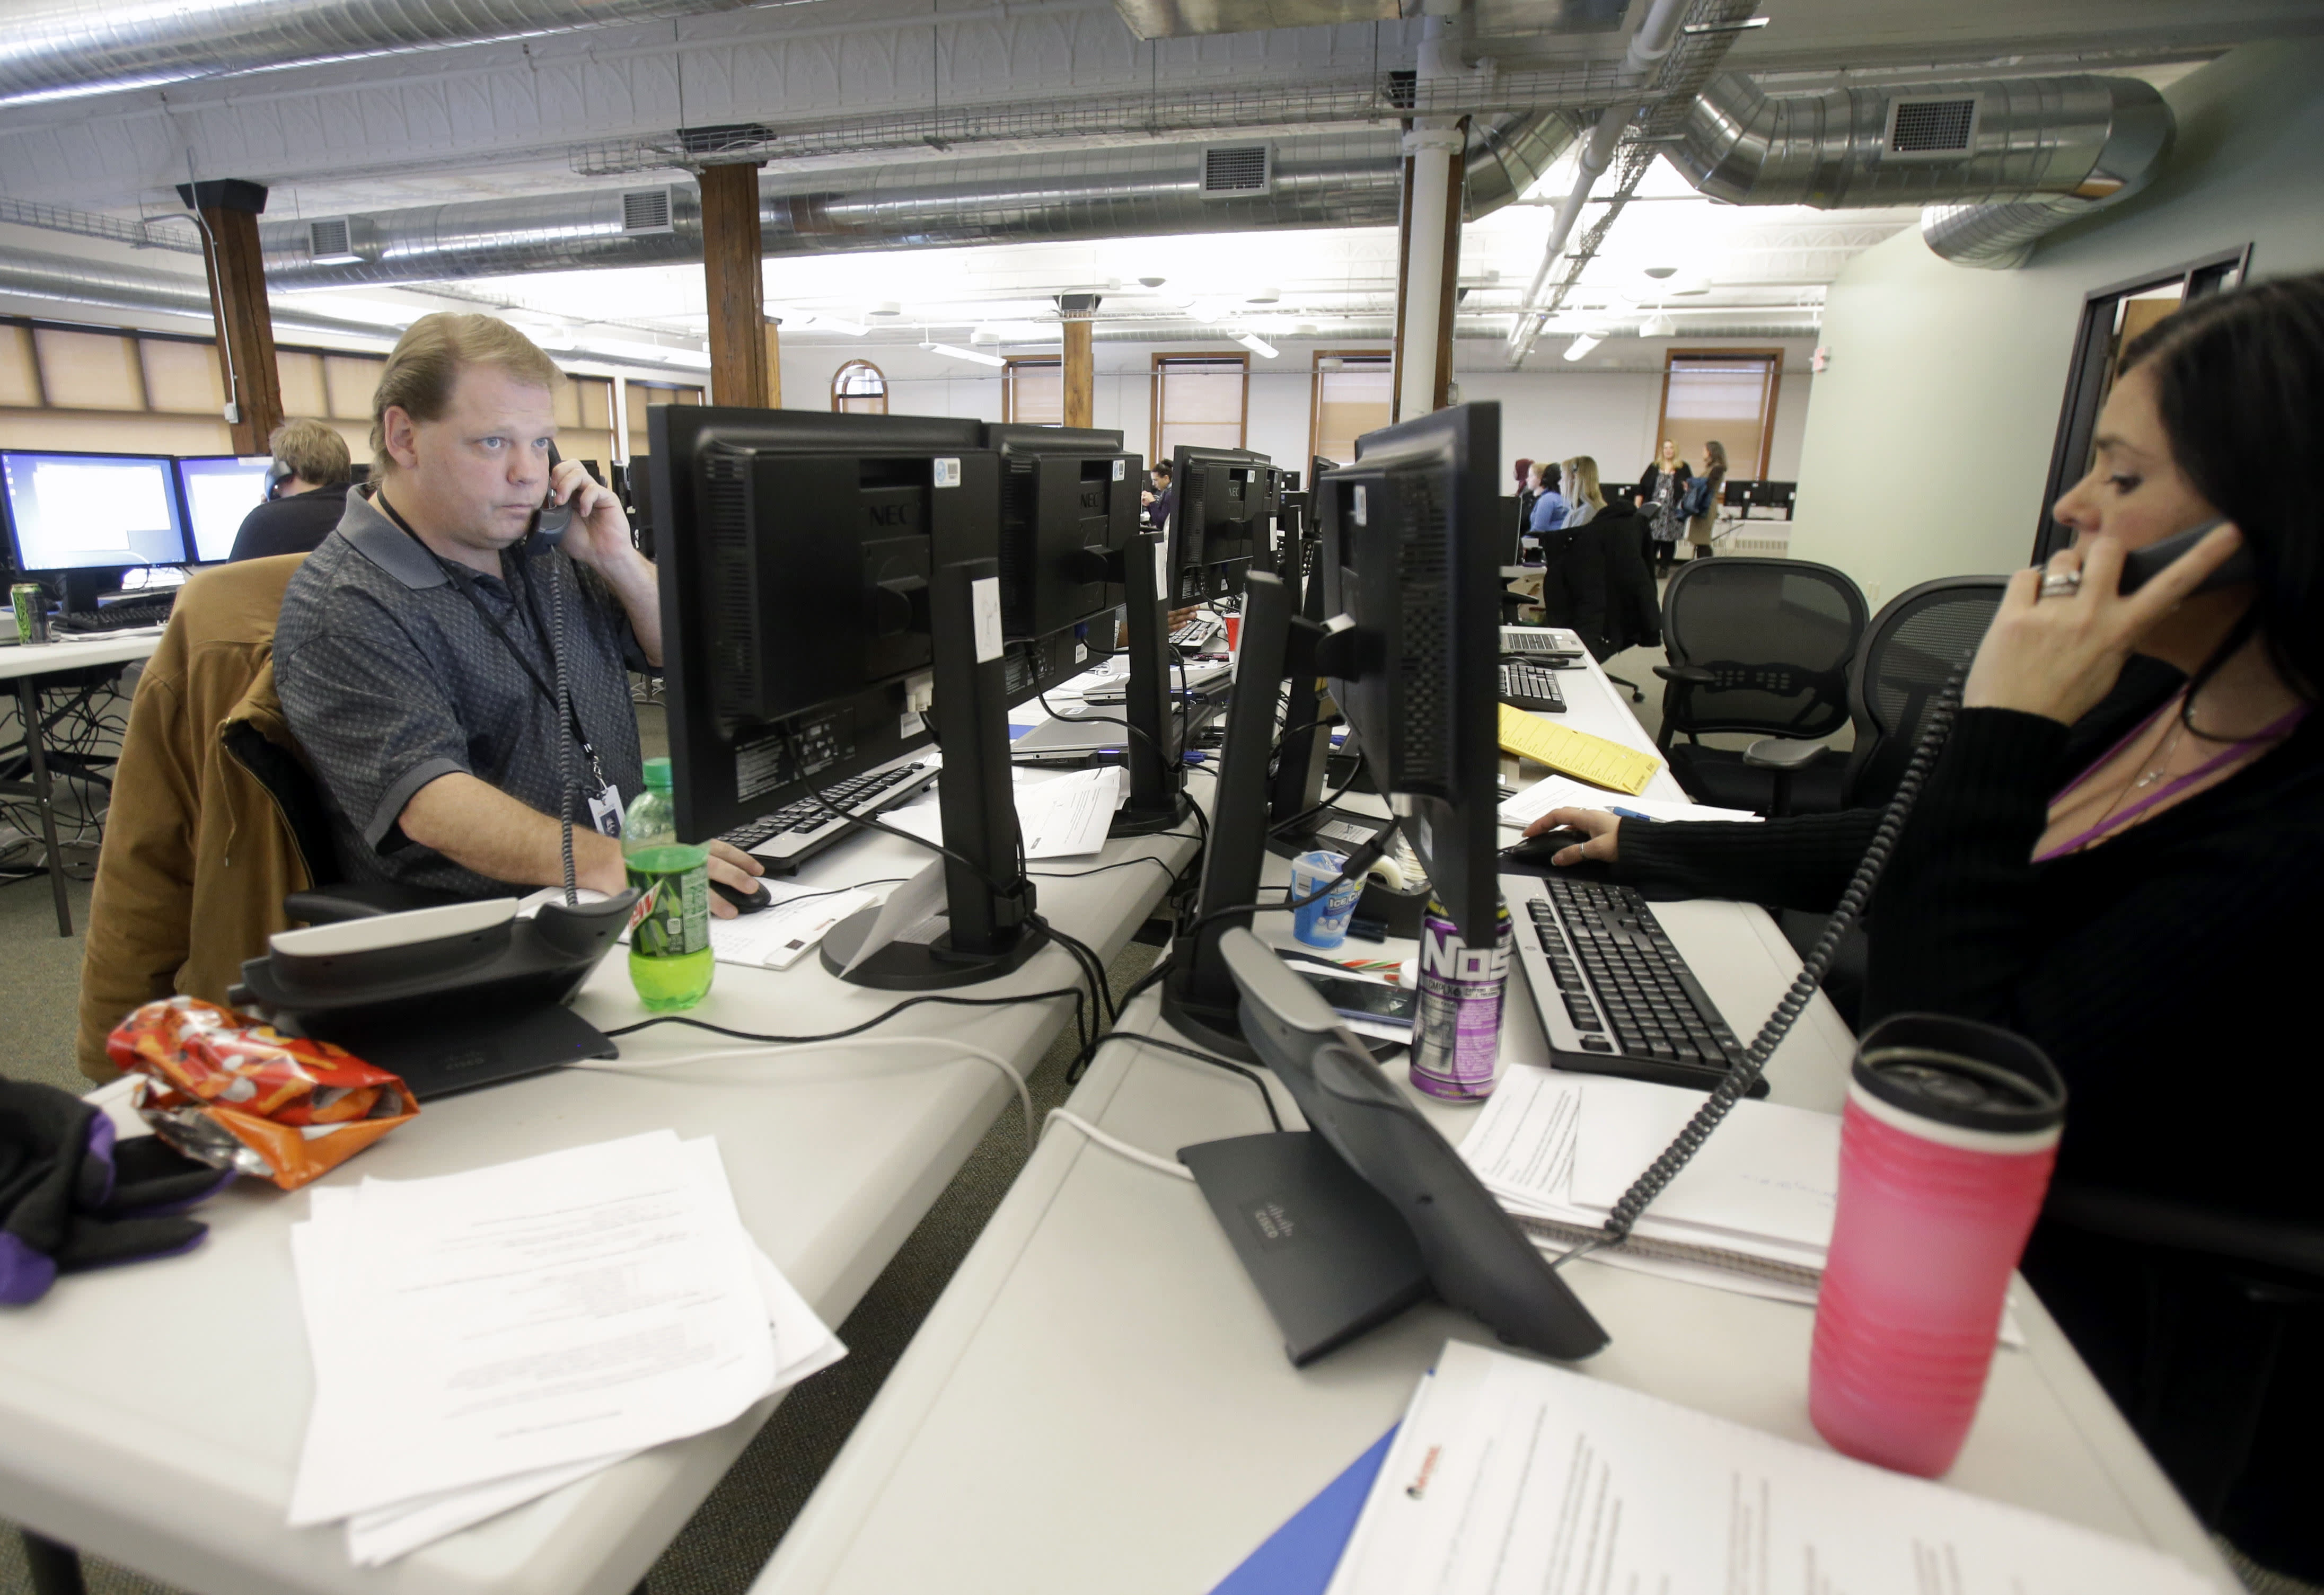 In this Dec. 31, 2013 photo, guides work the phone bank at MnSure, Minnesota's insurance marketplace in St. Paul, Minn.The 14 states running their own insurance marketplaces had their 2014 budgets footed by the federal government, but starting in 2015 were supposed to fund themselves. Most planned to do so with revenue derived from enrollments, but in states like Minnesota, the lagging pace of sign ups has thrown that into question. (AP Photo/Jim Mone)